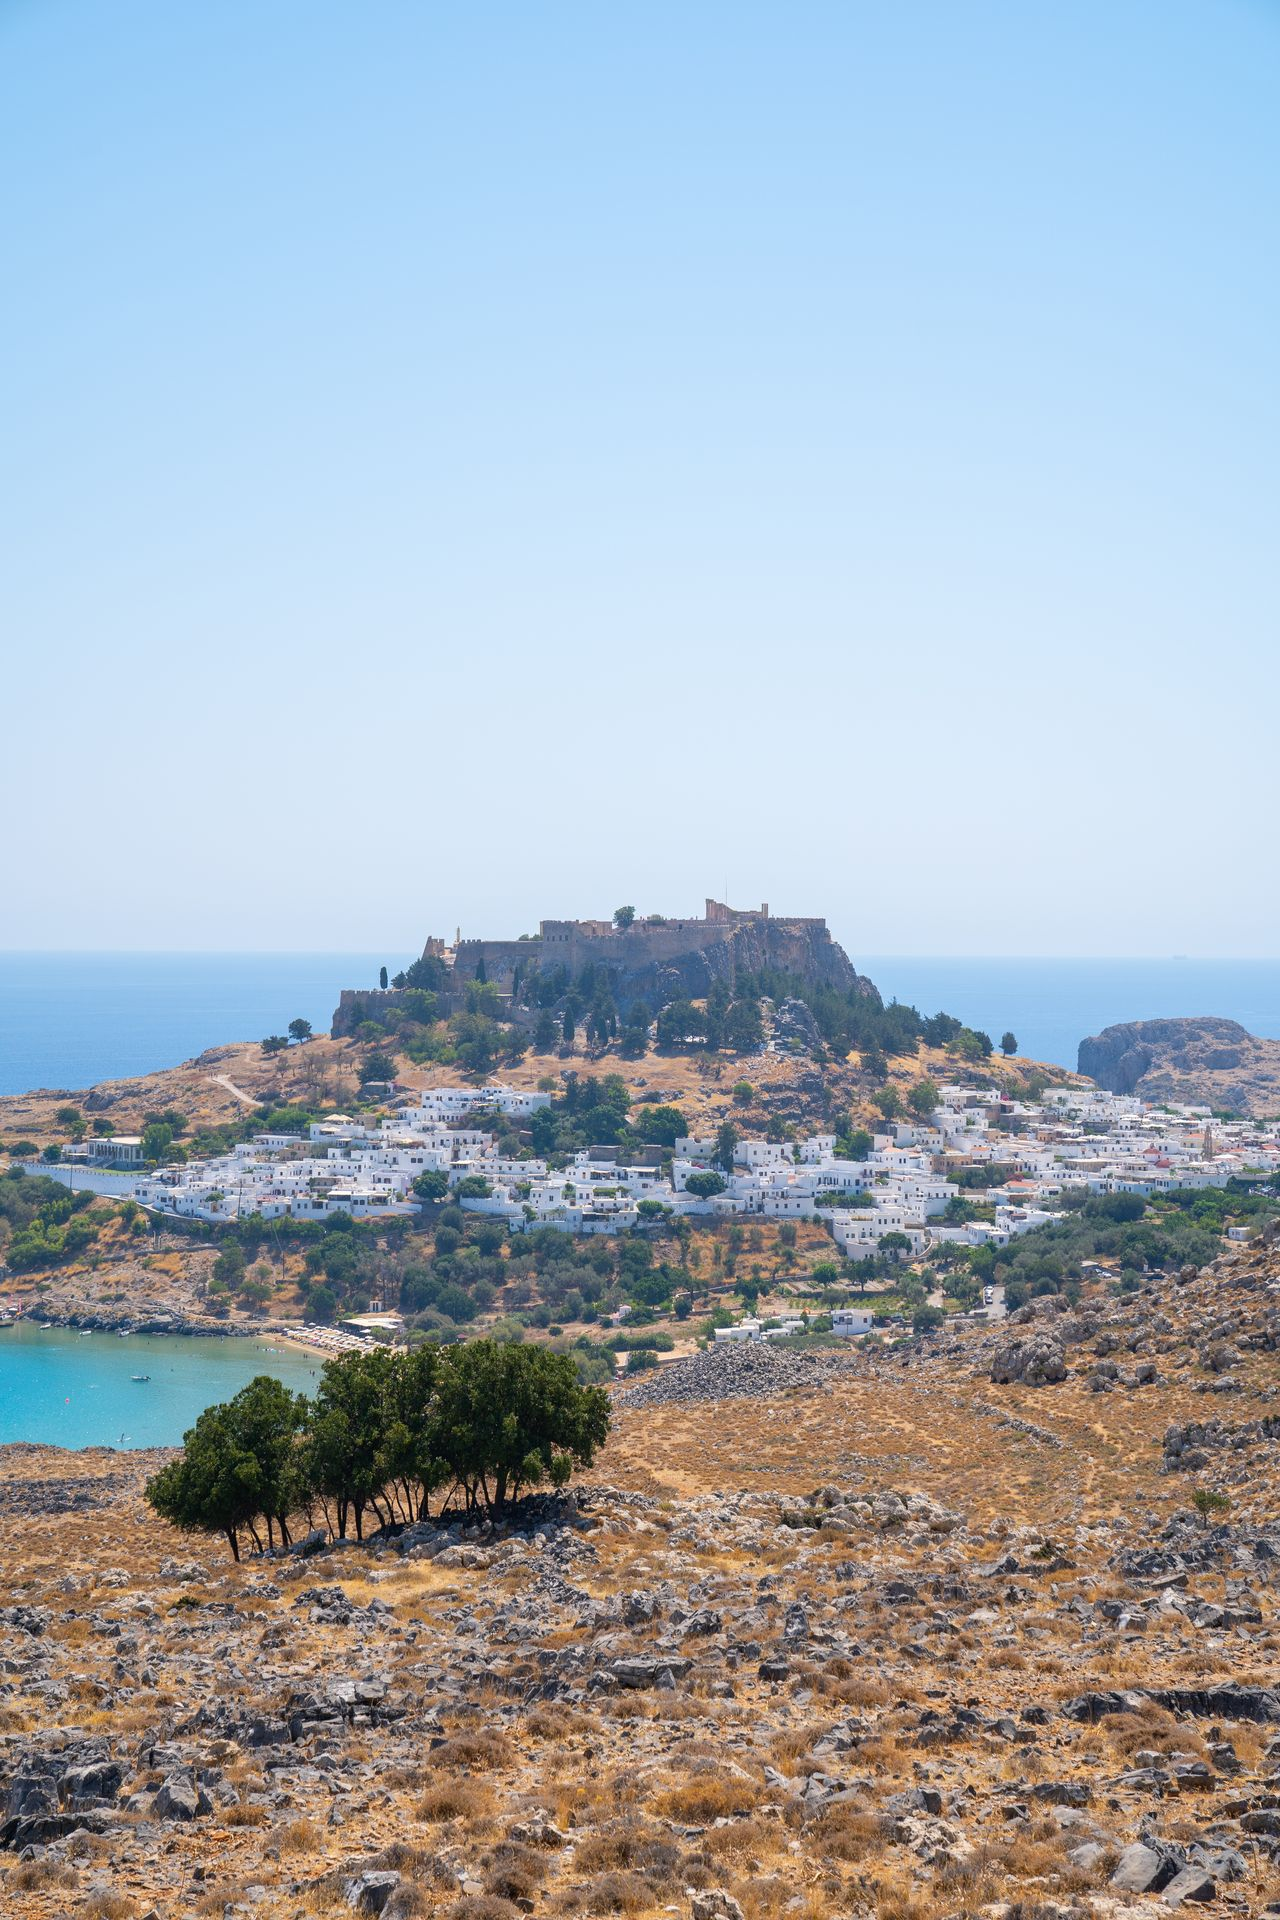 No visit to Rhodes is complete without exploring Lindos